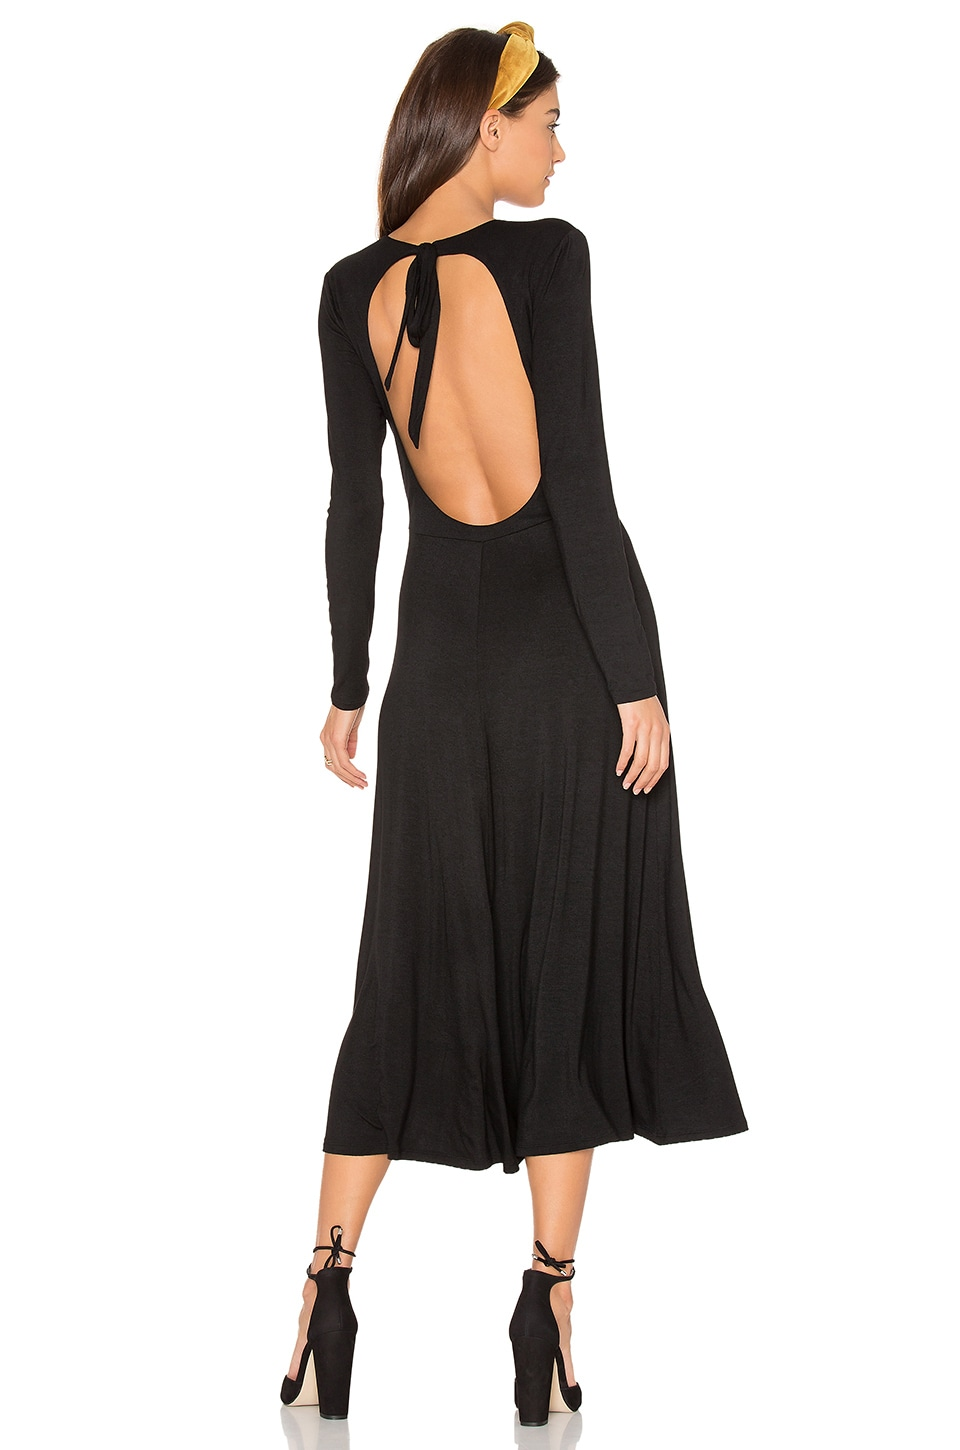 Privacy Please Poppy Dress in Black